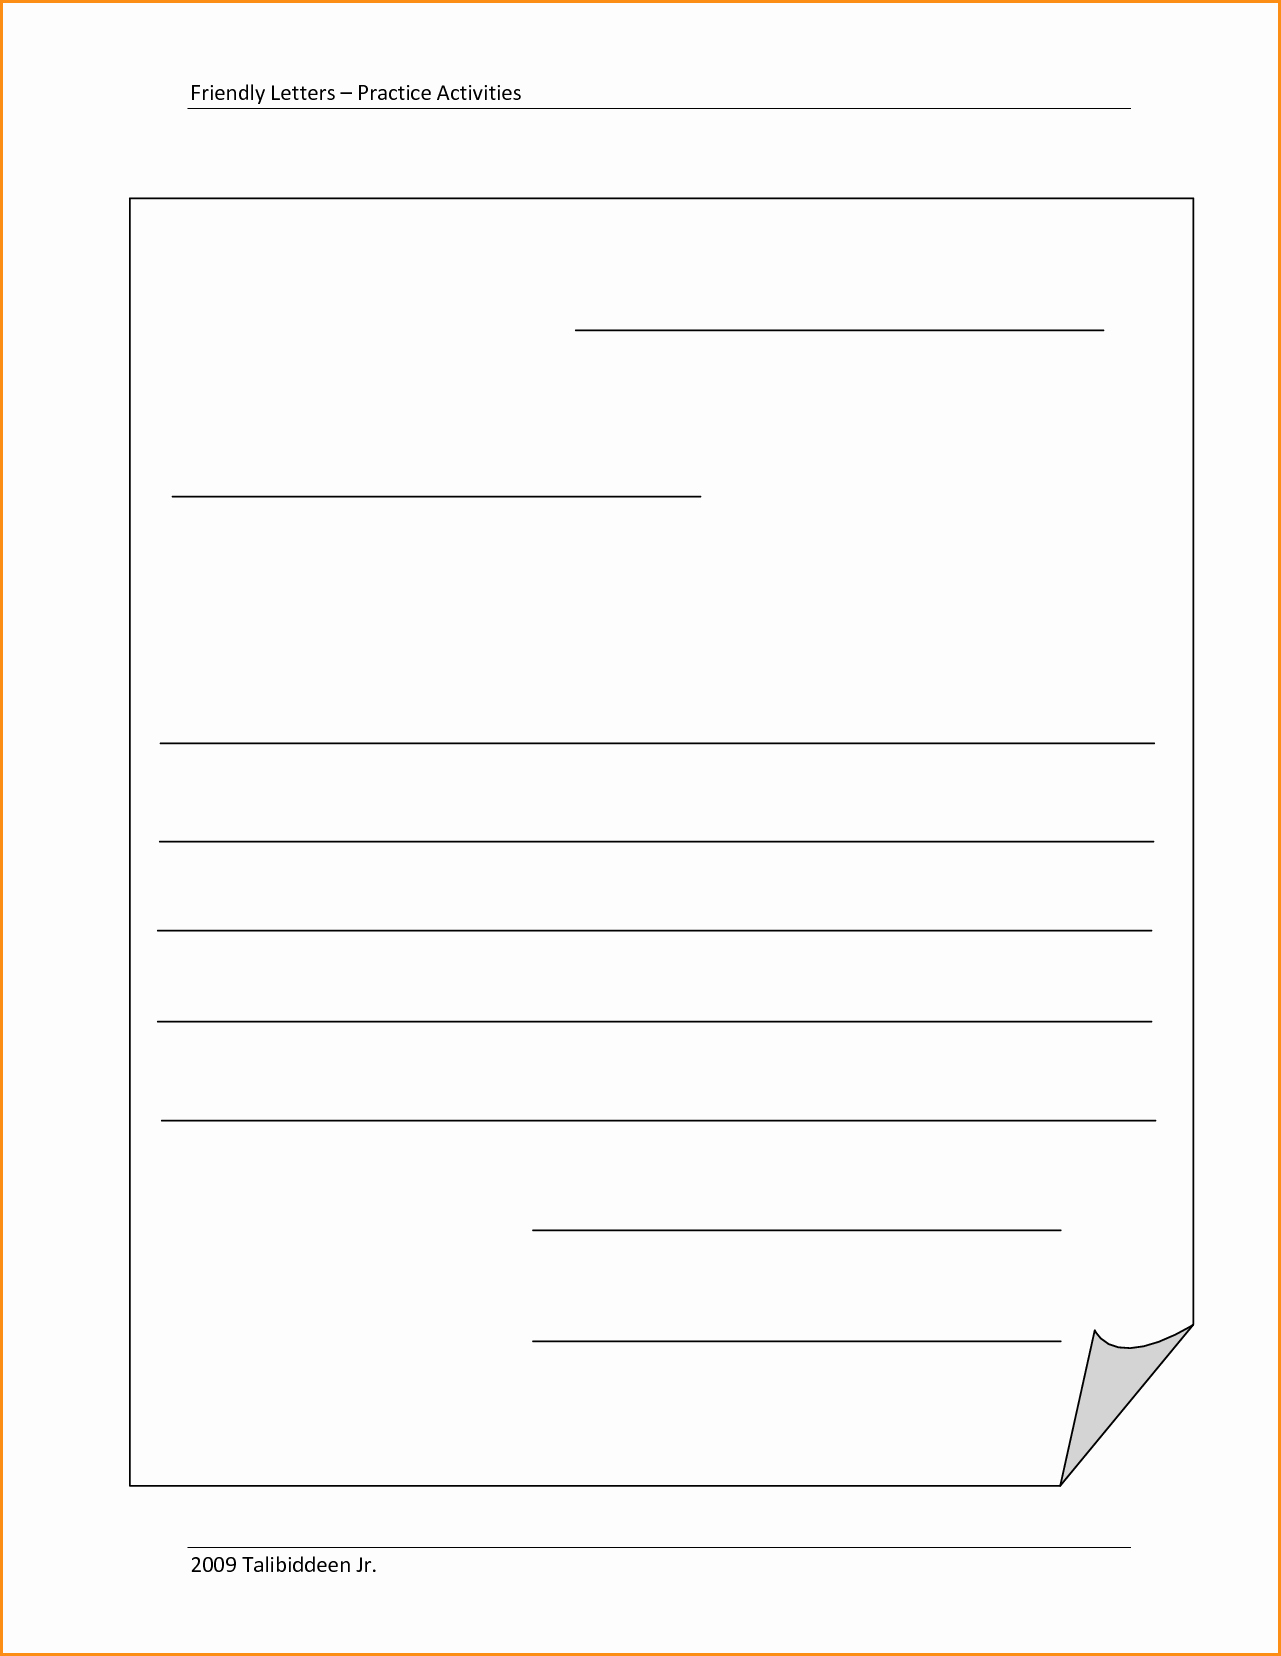 Template Of A Business Letter New 10 Friendly Letter Template for Kids